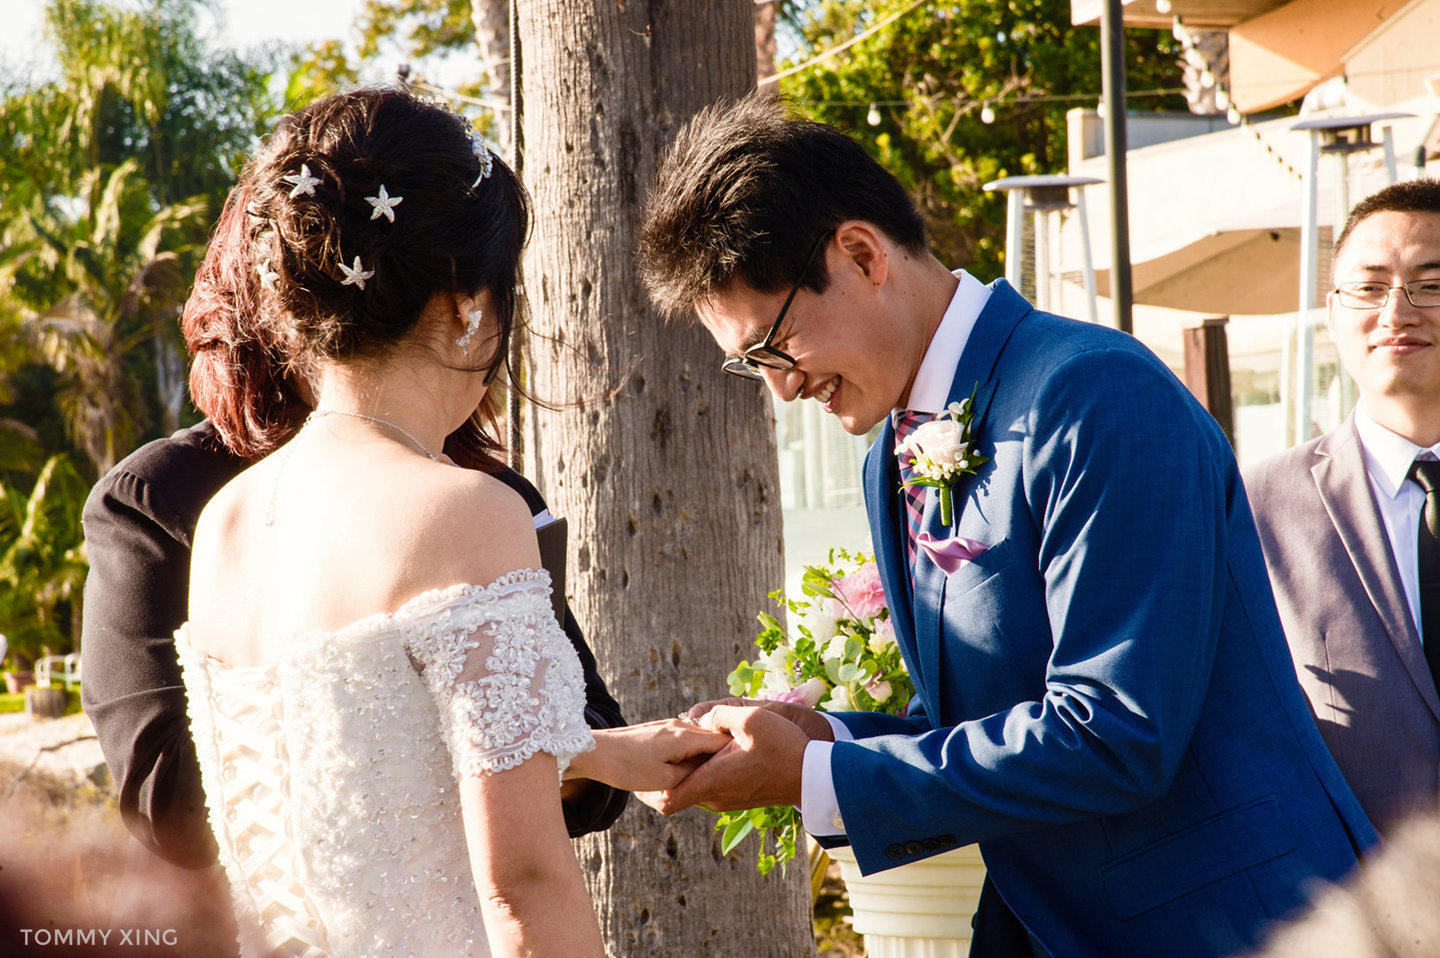 Paradise Point Resort Wedding Xiaolu & Bin San Diego 圣地亚哥婚礼摄影跟拍 Tommy Xing Photography 洛杉矶婚礼婚纱照摄影师 155.jpg